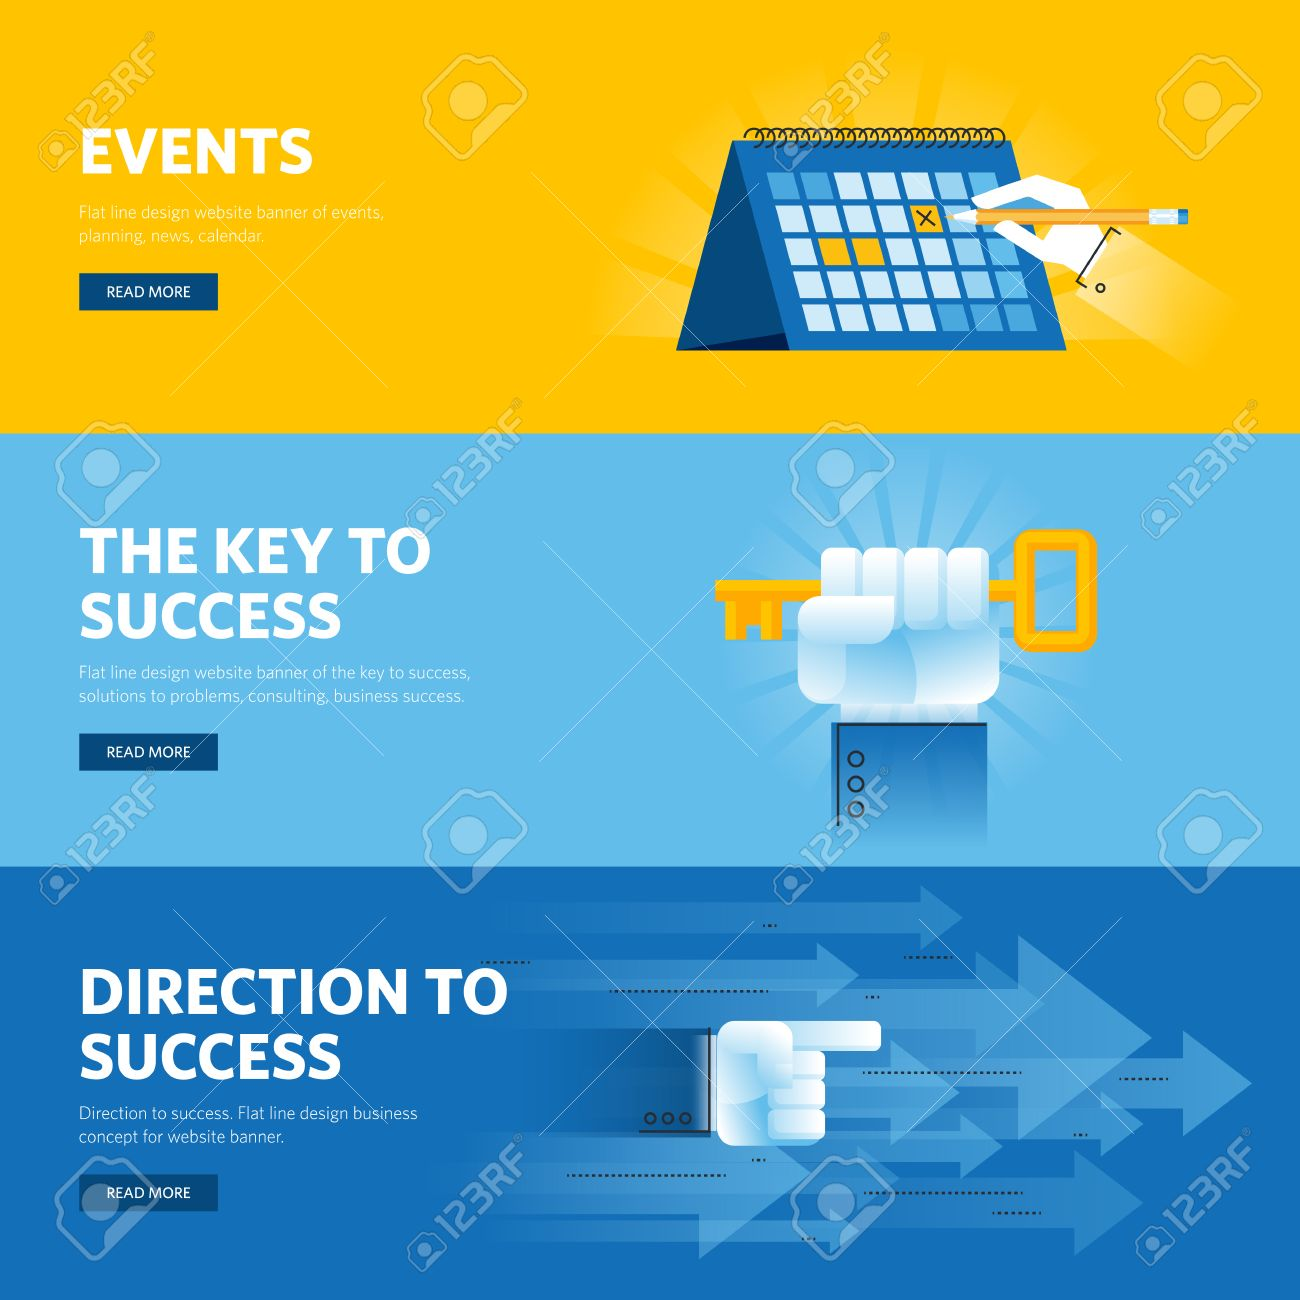 Free banner images for website - Set Of Flat Line Design Web Banners For Busisness Success Strategy Organization News